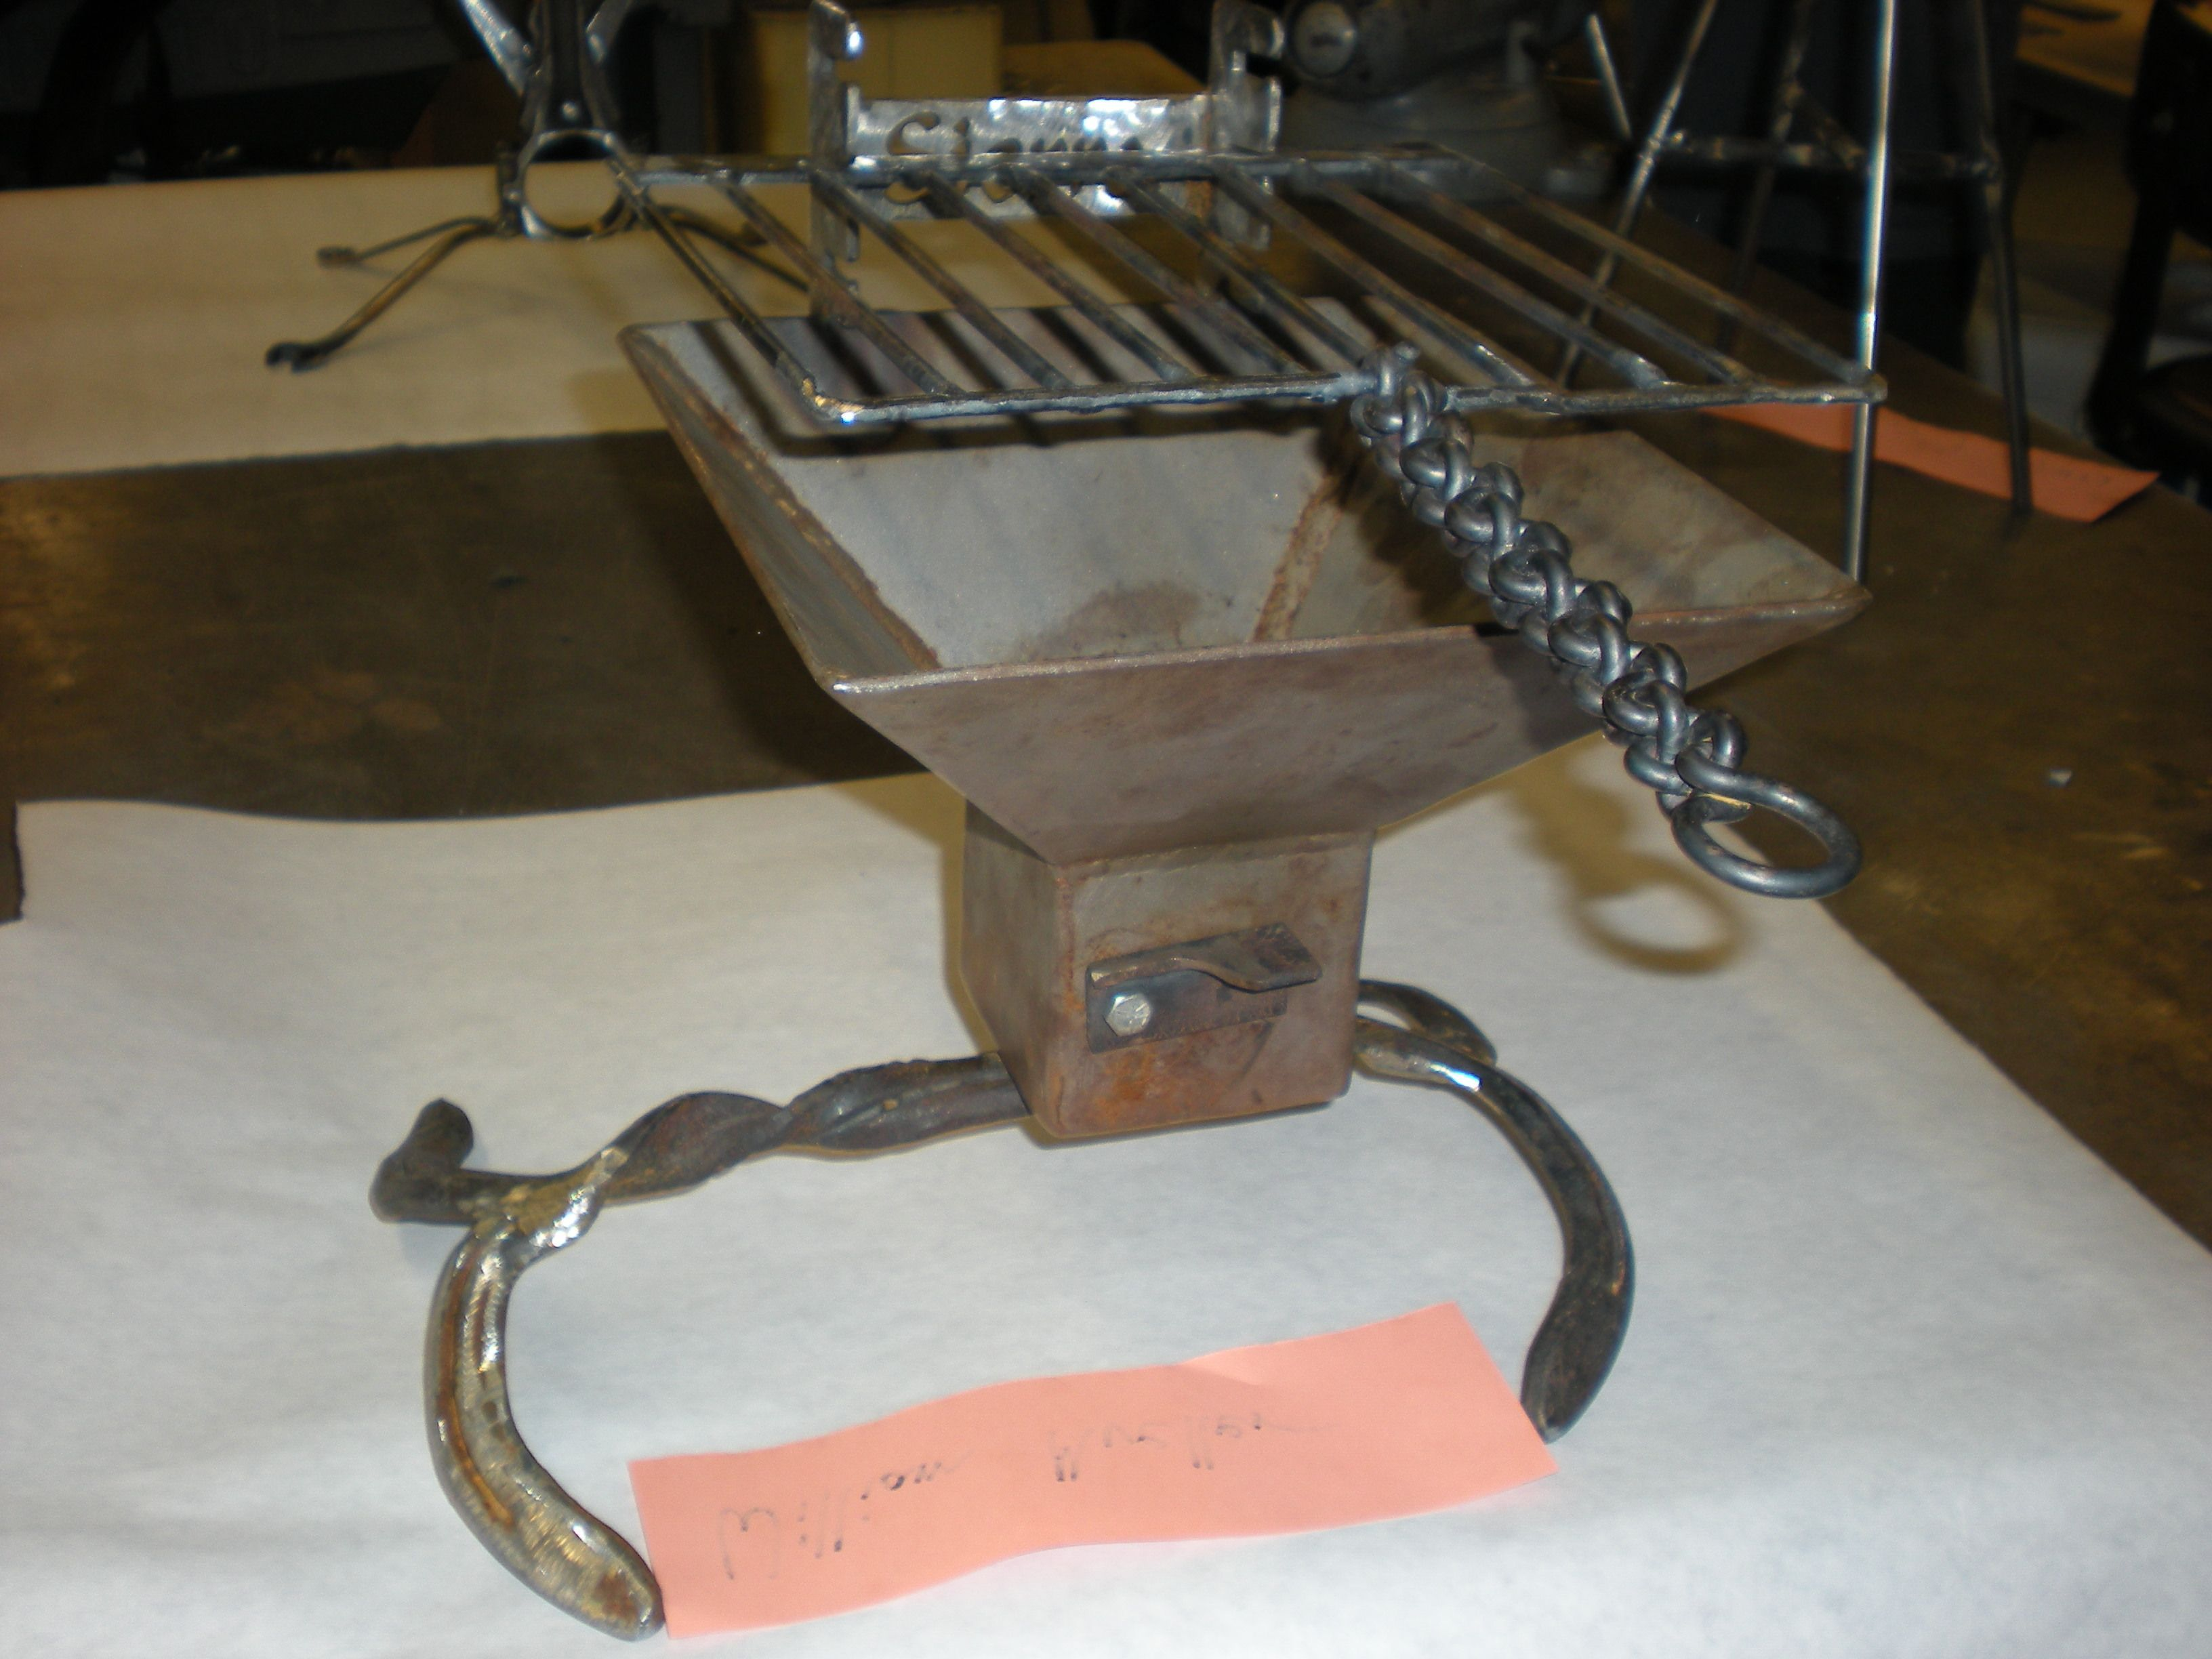 Welding Projects For High School Google Search Welding